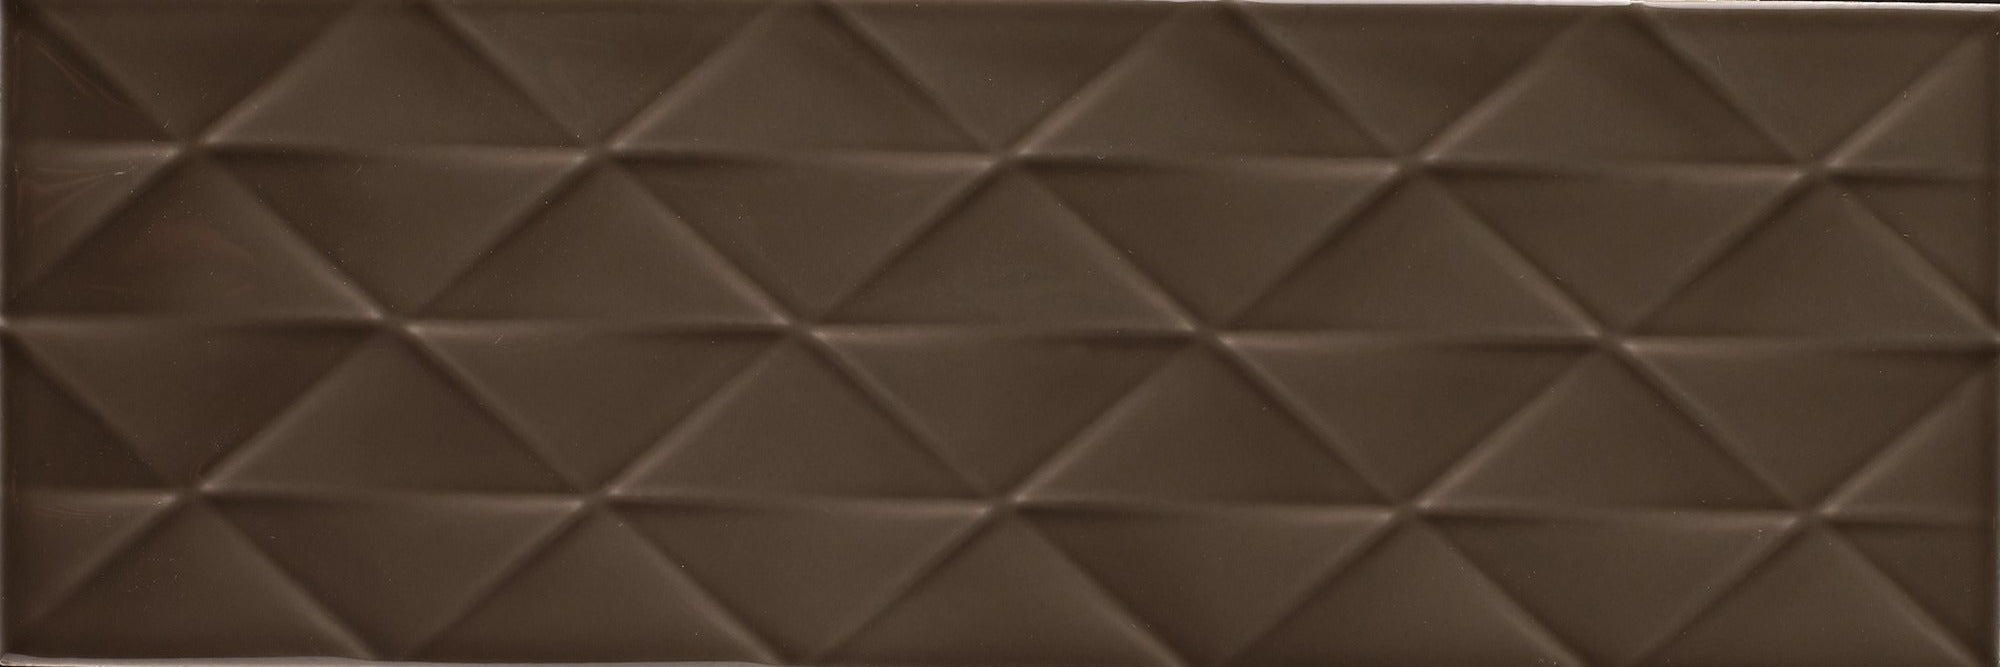 10x30cm Savoy Caraway gloss decor wall tile-Johnson Tiles-Brooke ceramics ltd